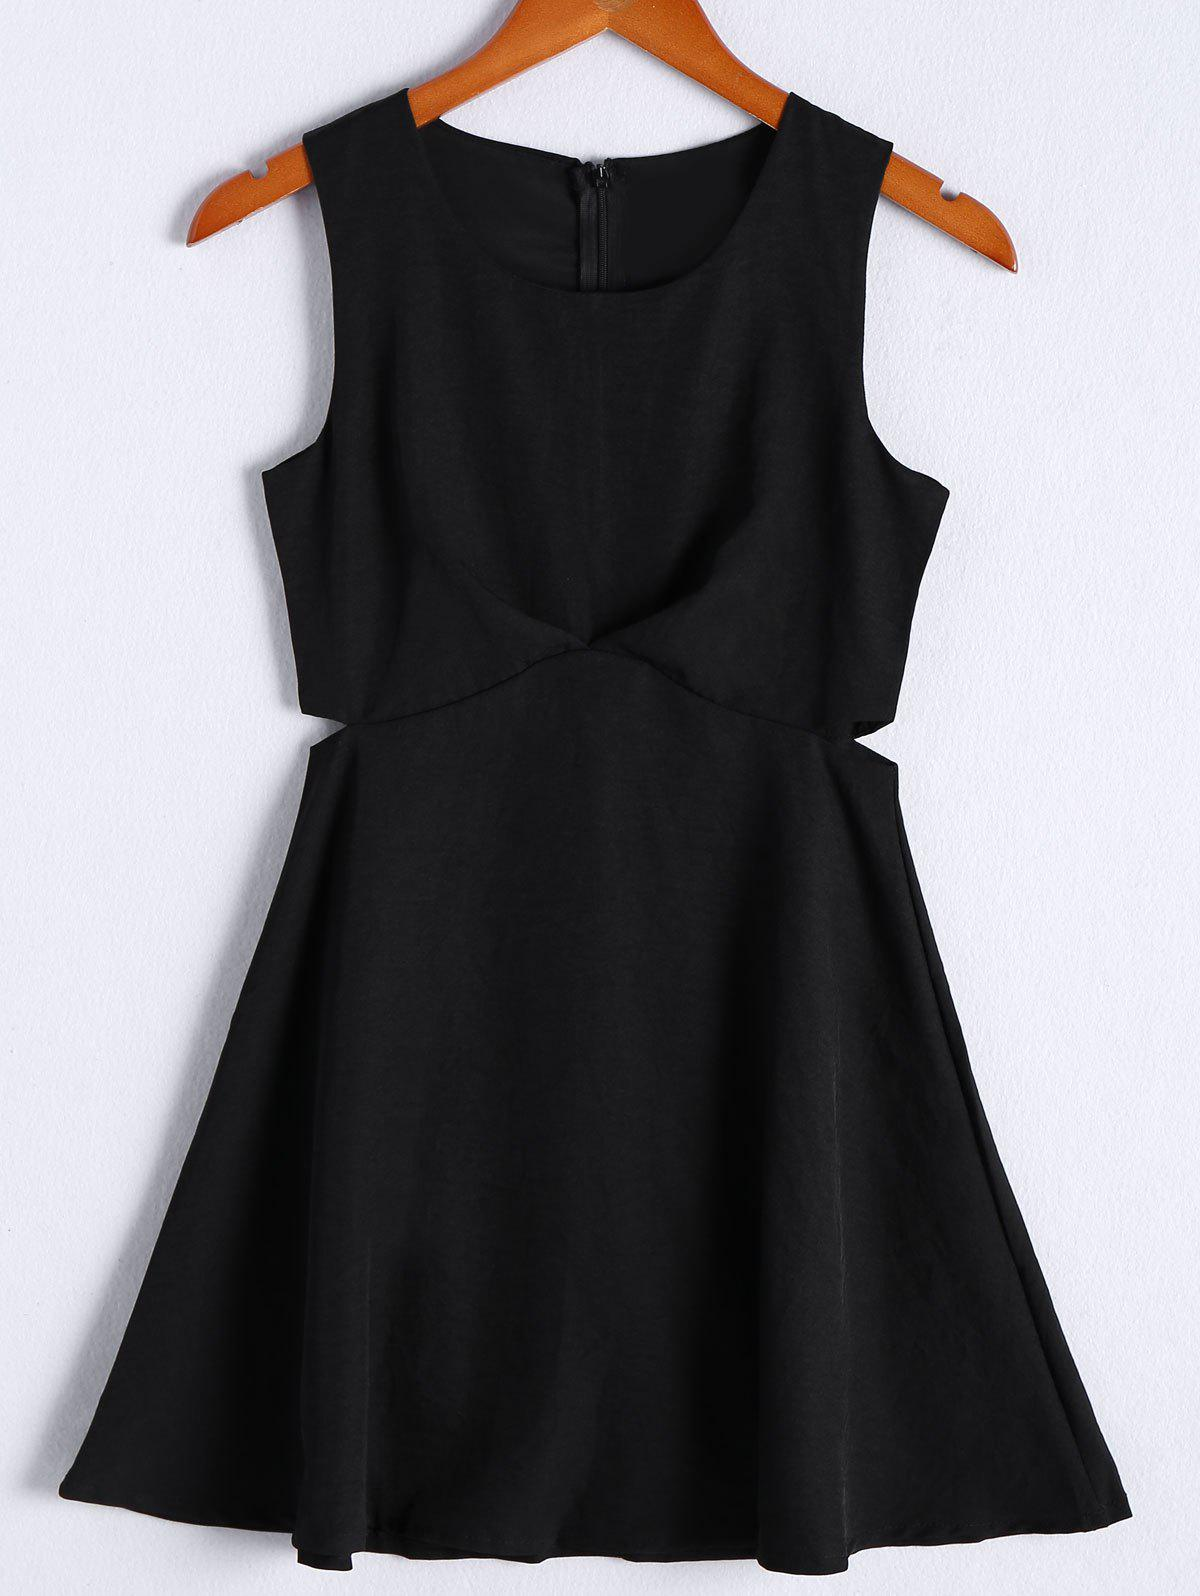 Simple Women's Solid Color Scoop Neck Cut Out Sleeveless Flare Dress - BLACK L